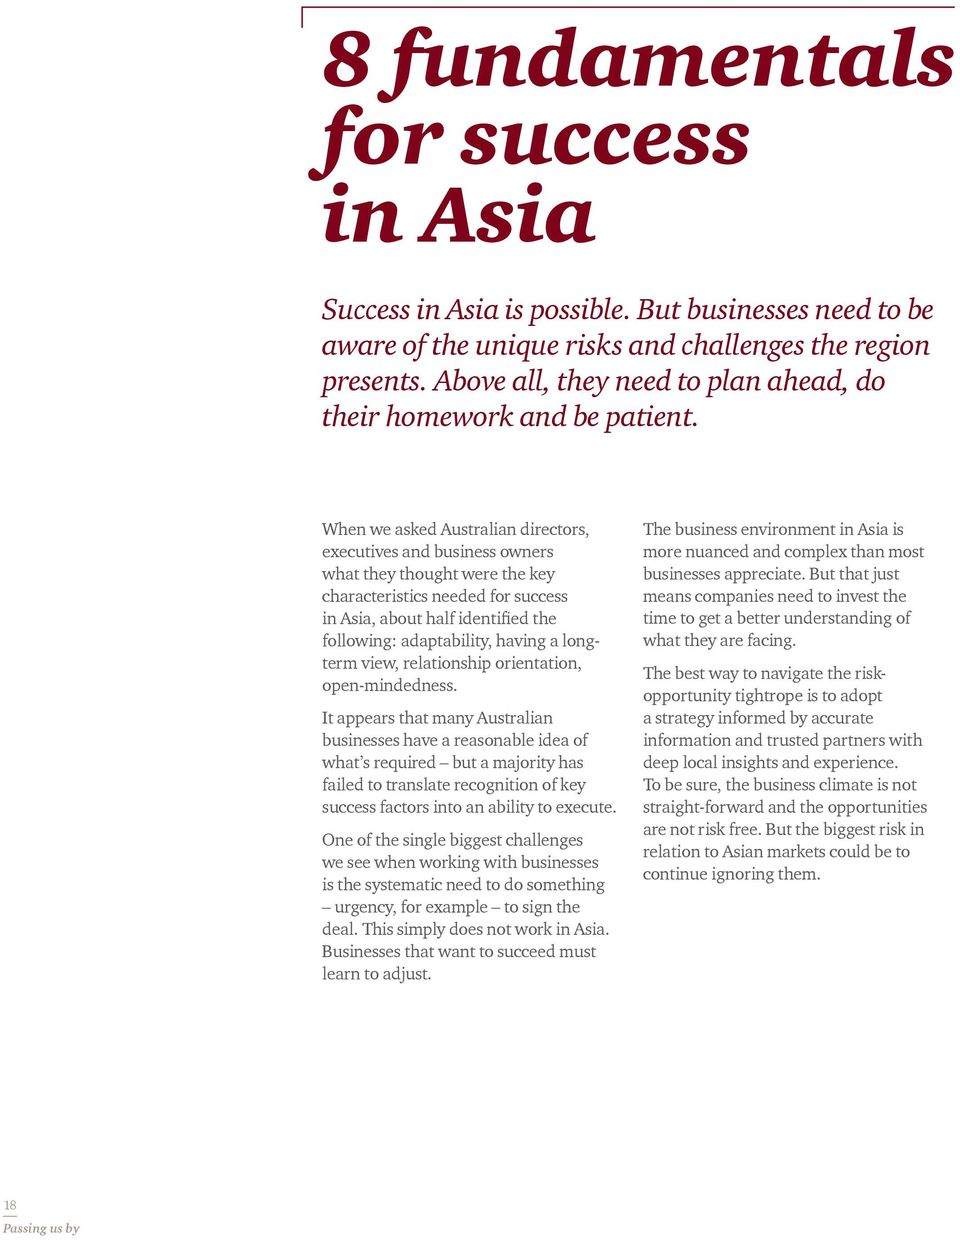 When we asked Australian directors, executives and business owners what they thought were the key characteristics needed for success in Asia, about half identified the following: adaptability, having